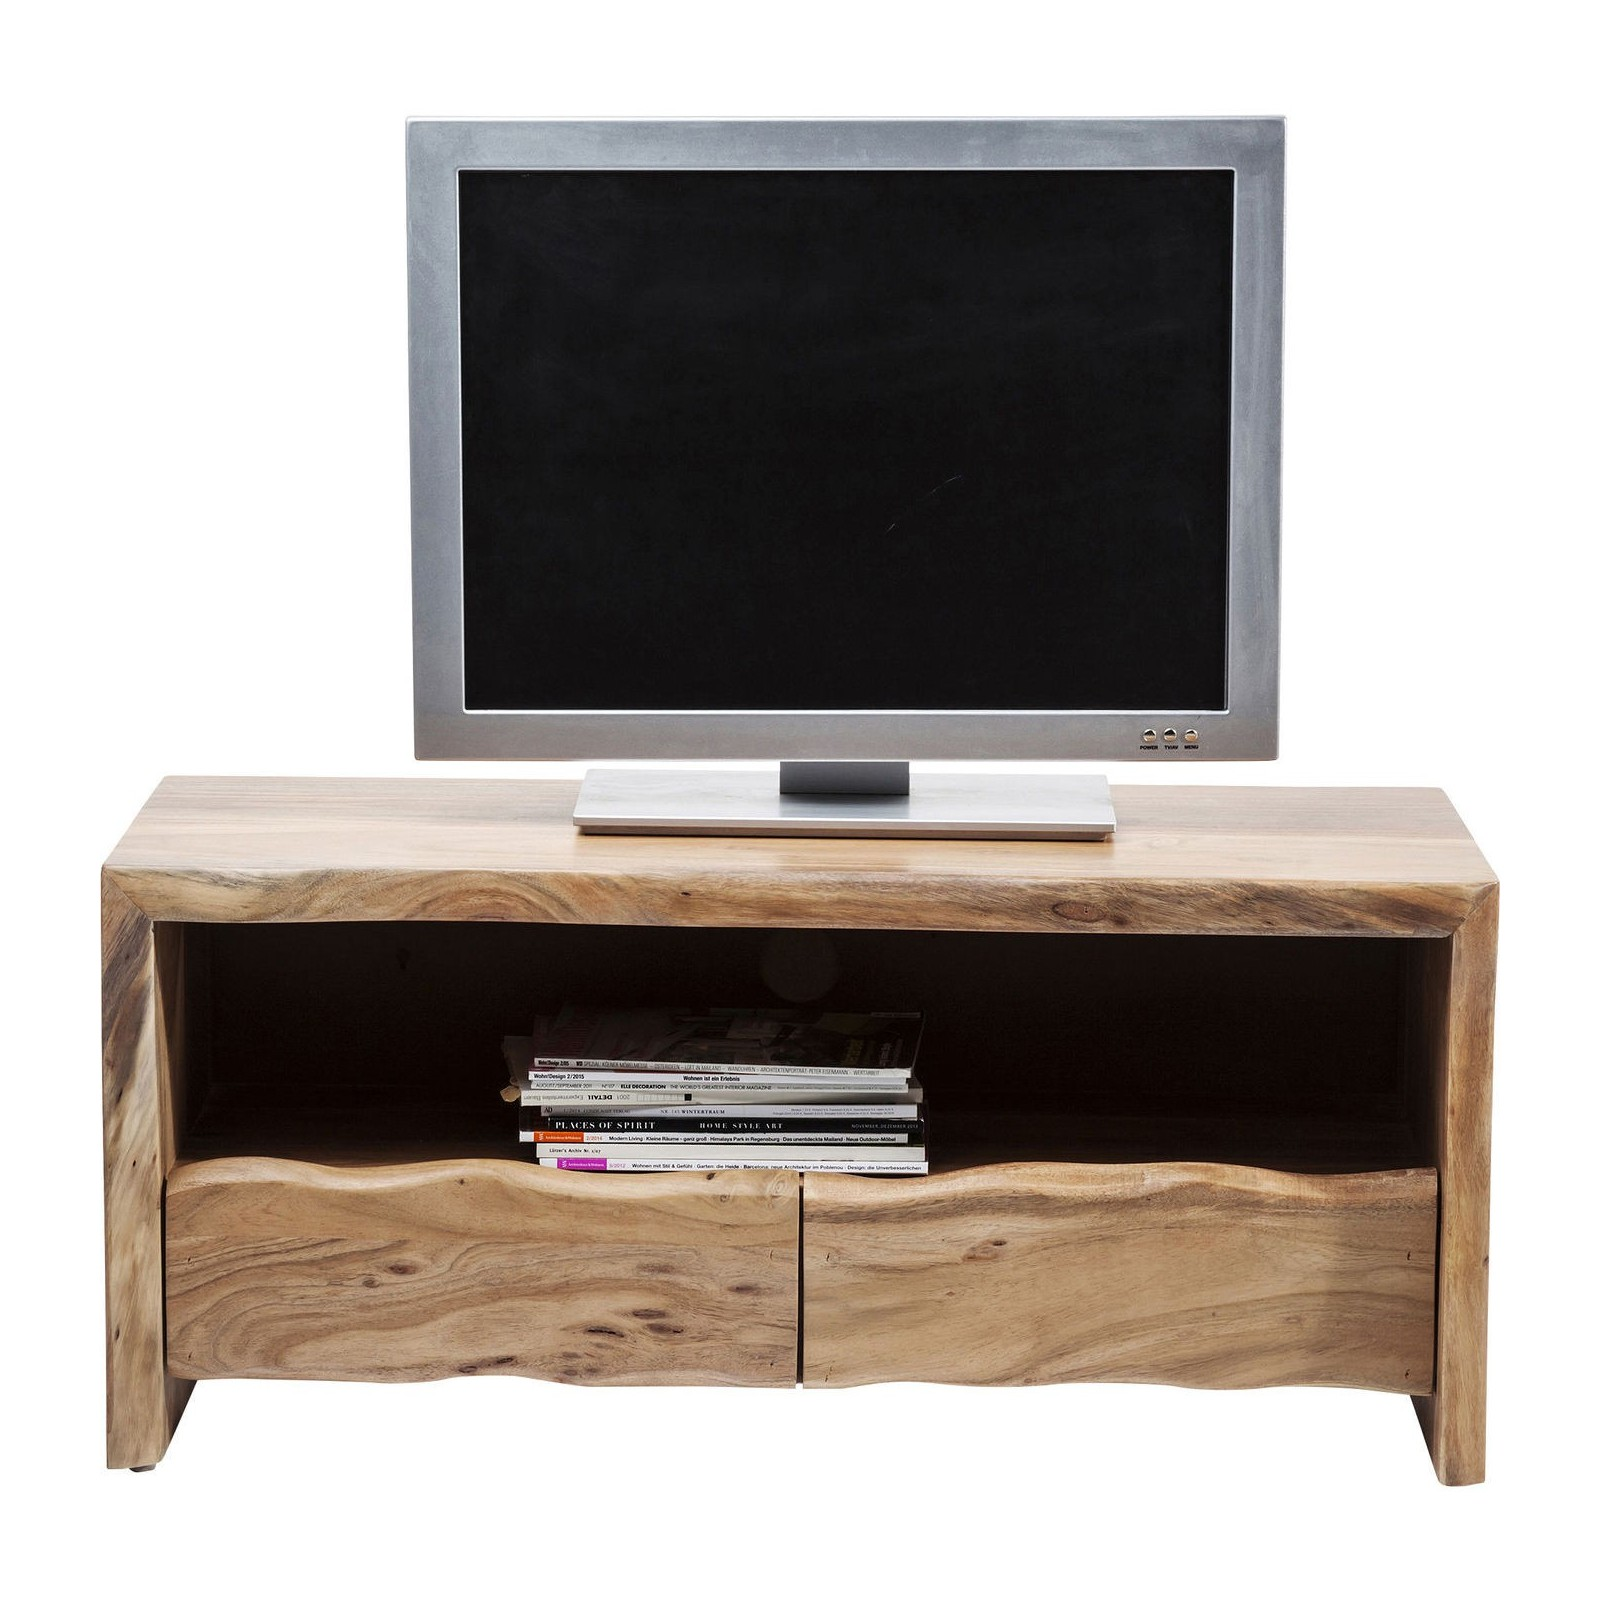 Meuble tv scandinave en bois pure nature kare design for Meuble tv suspendu 100 cm